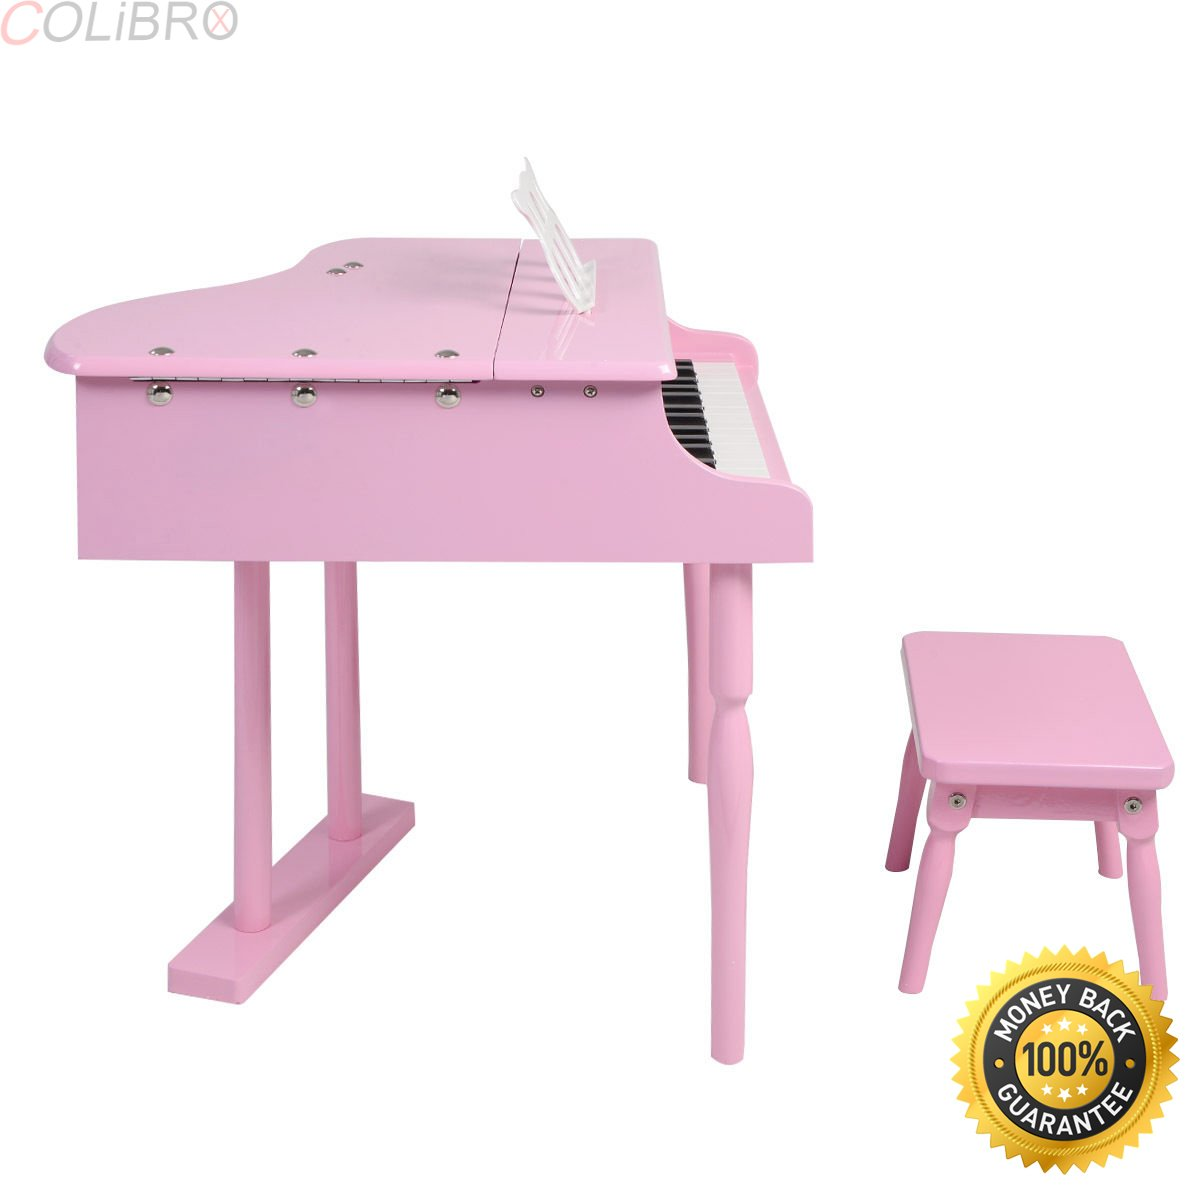 COLIBROX--Childs 30 key Toy Grand Baby Piano w/Kids Bench Wood Pink Christmas Gift. learn-to-play children grand piano features 30 great sounding keys producing a charming tune which can make.